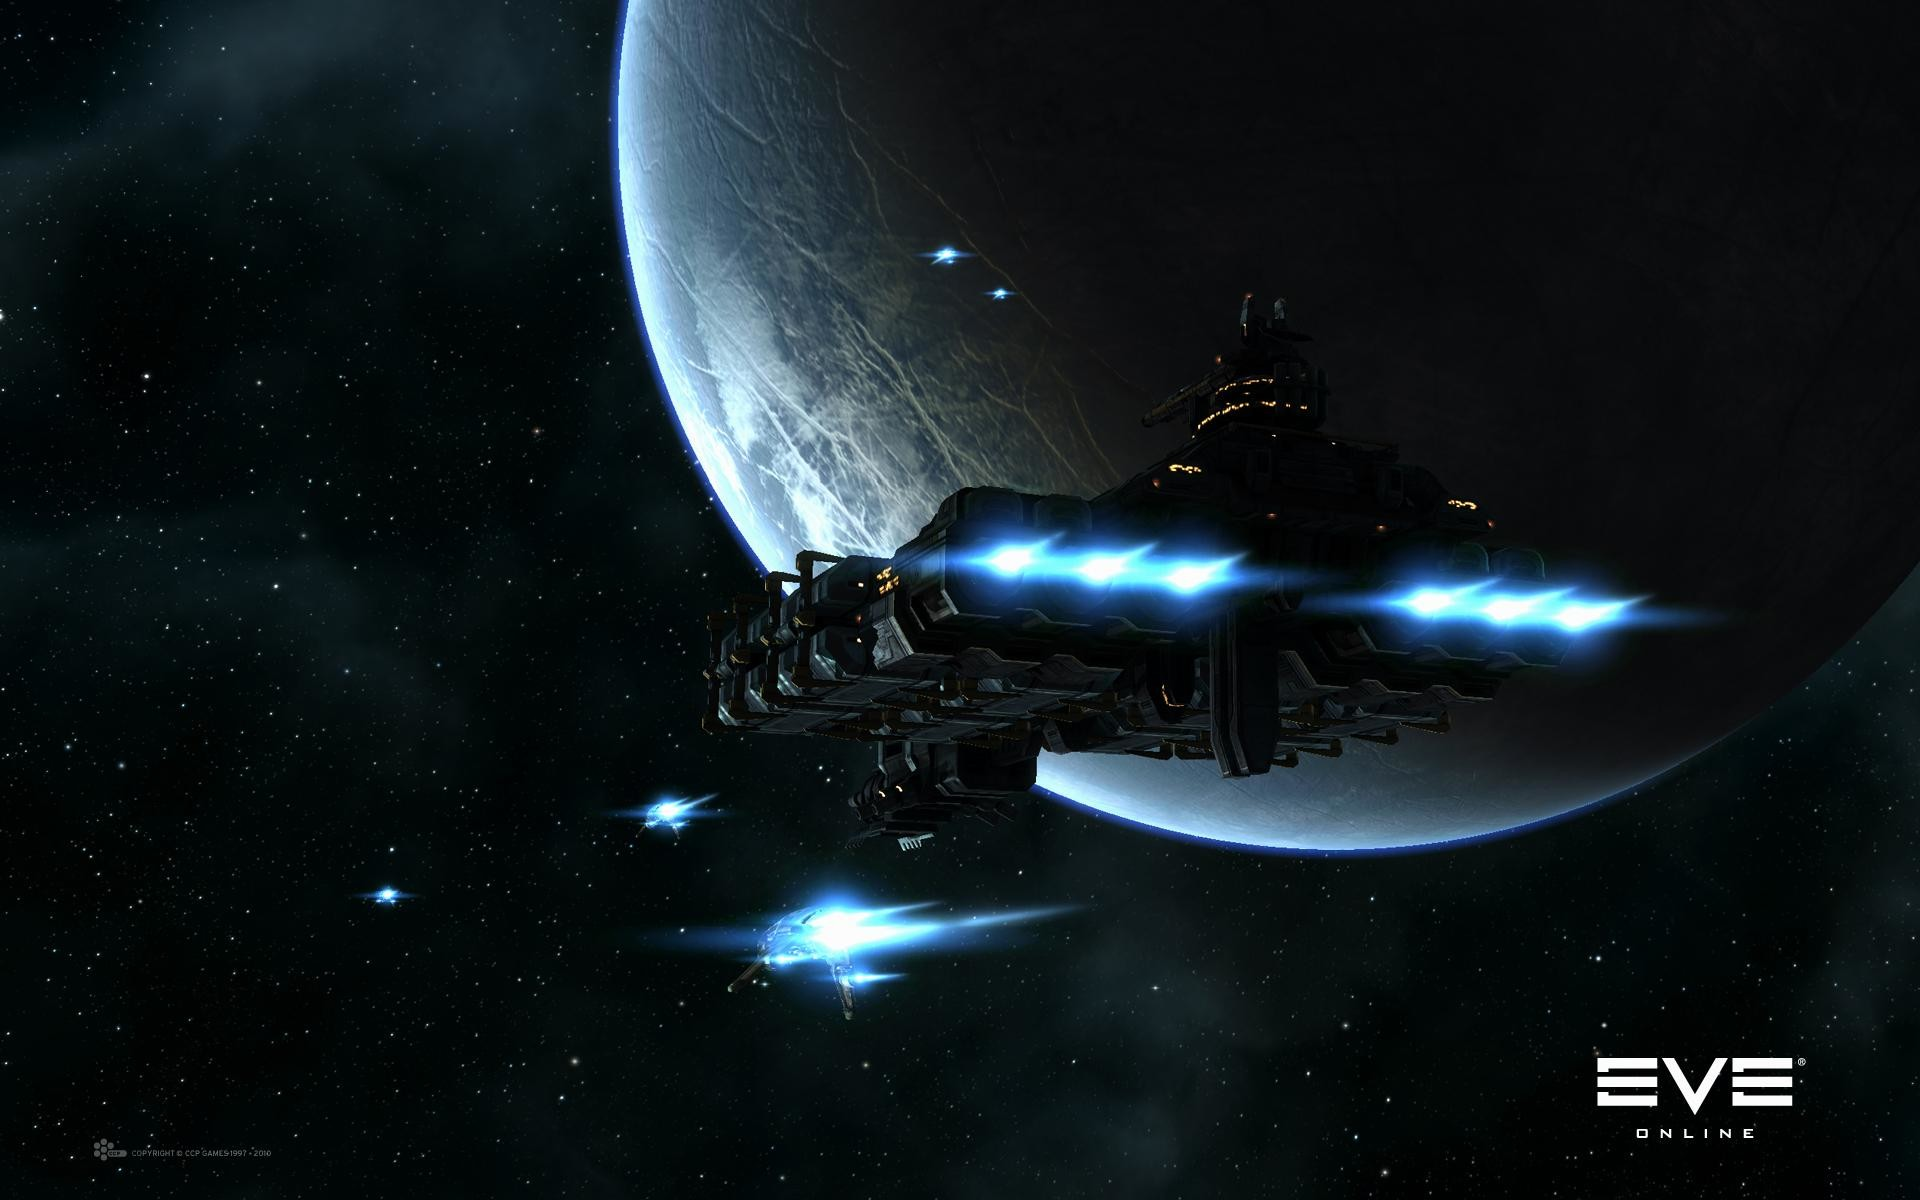 wallpaper.wiki-HD-eve-online-backgrounds-PIC-WPB006113